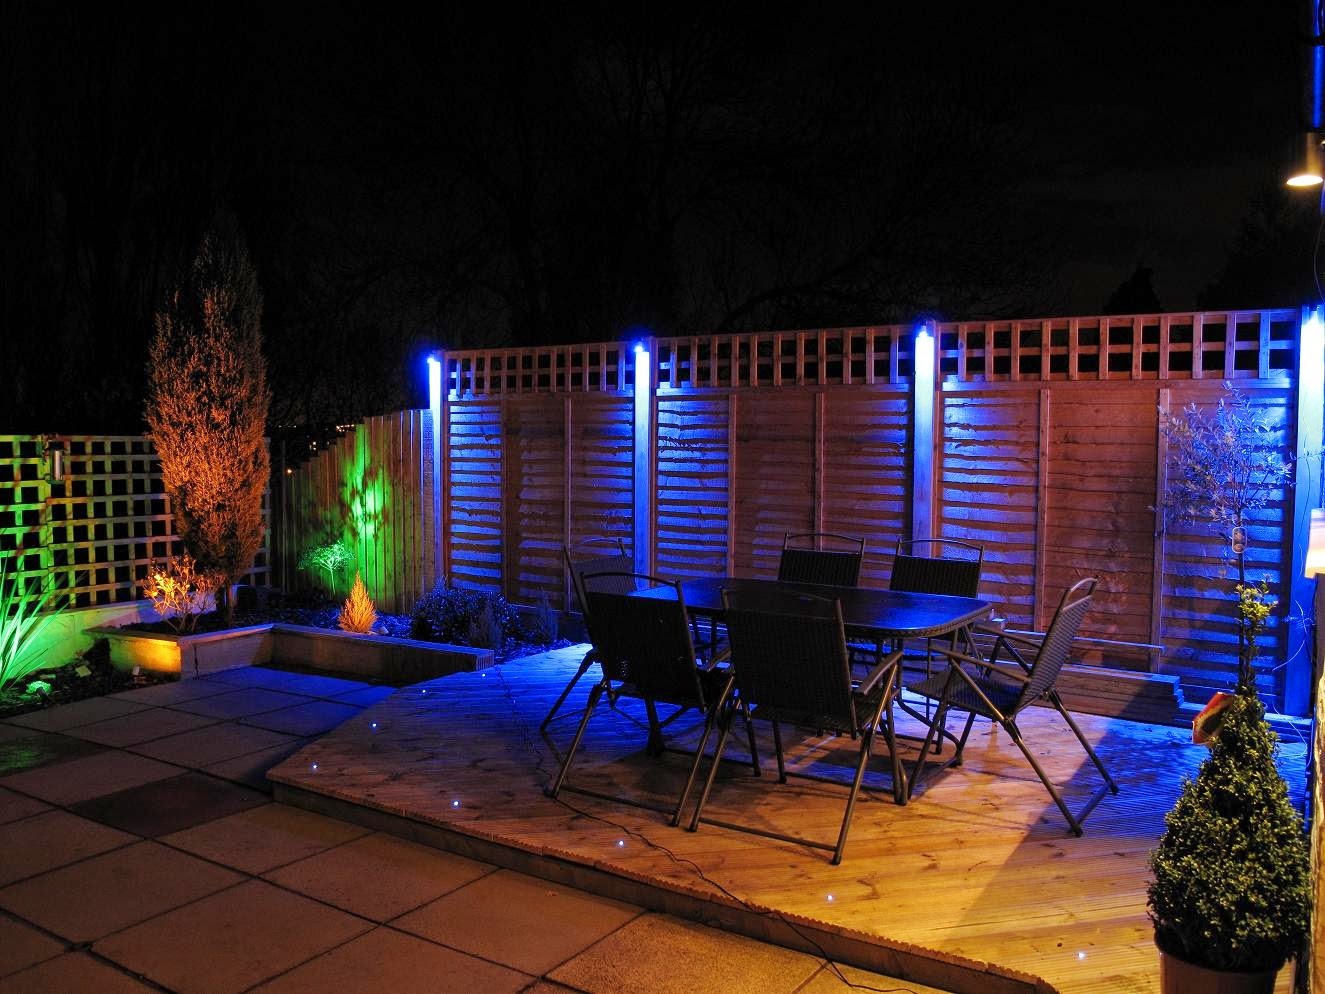 Modern Garden Lighting Modern garden design ideas great lighting